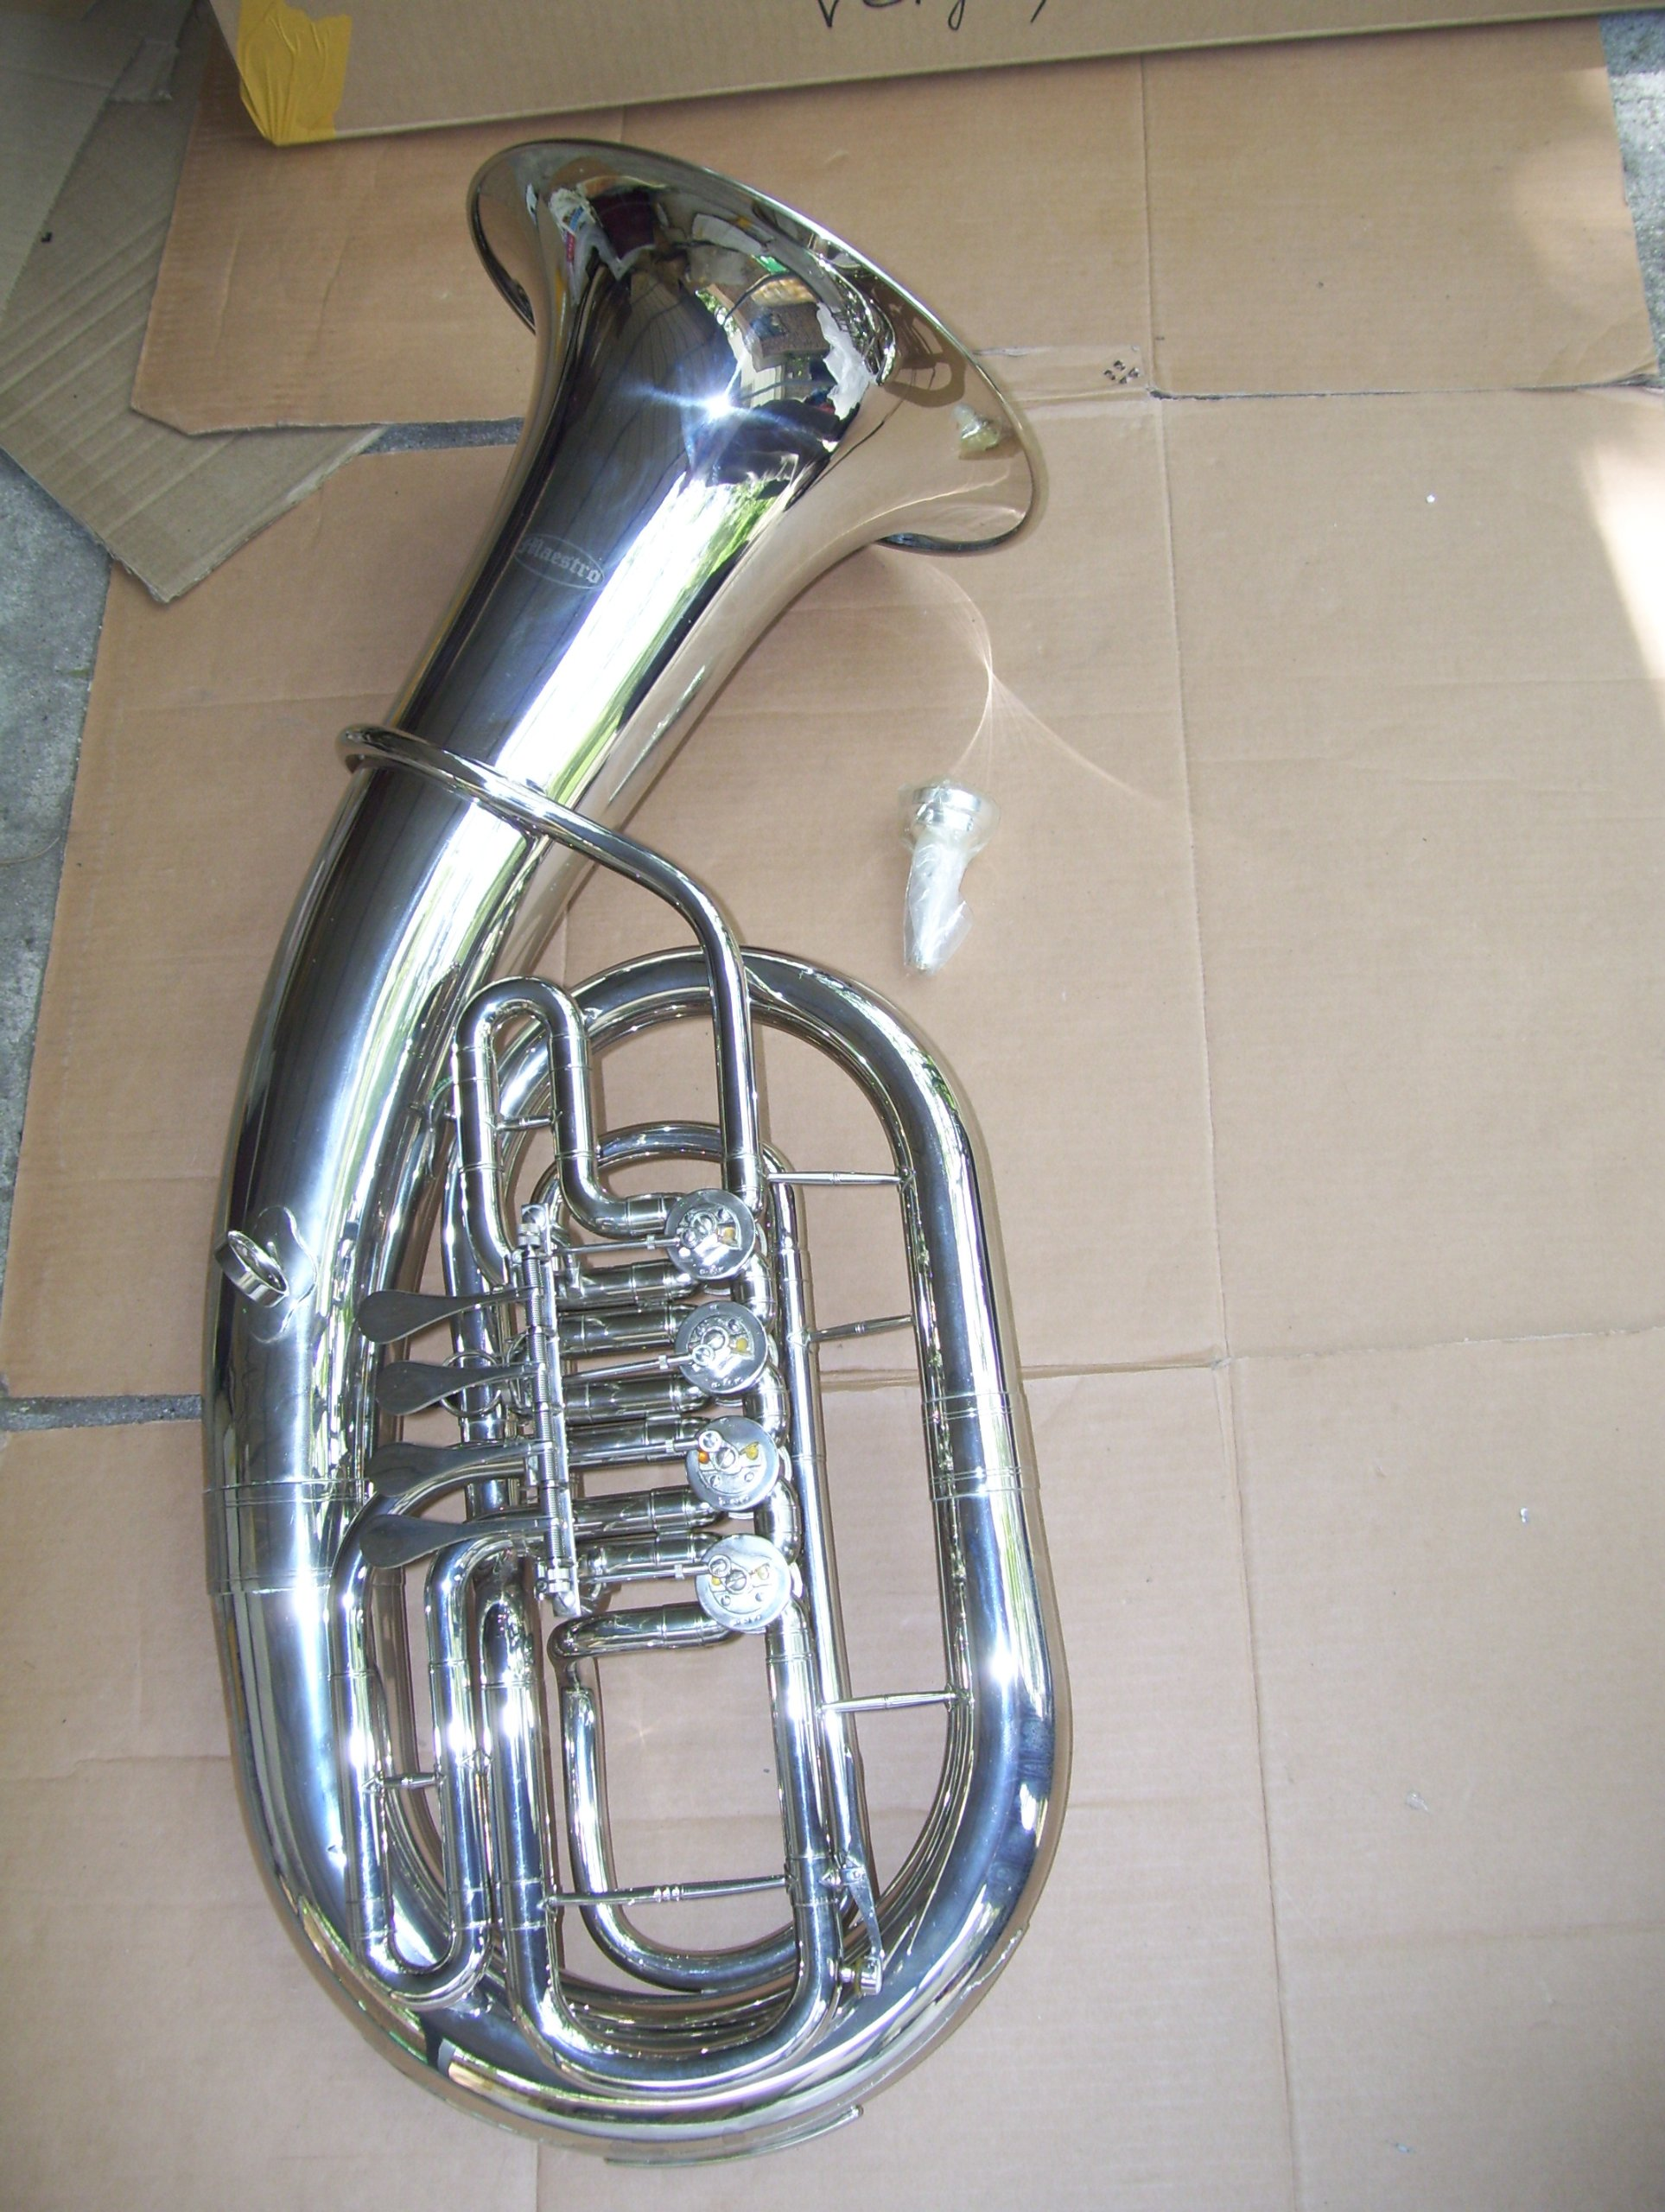 Euphonium with hard case and mouthpiece, 4 rotary valve, silver